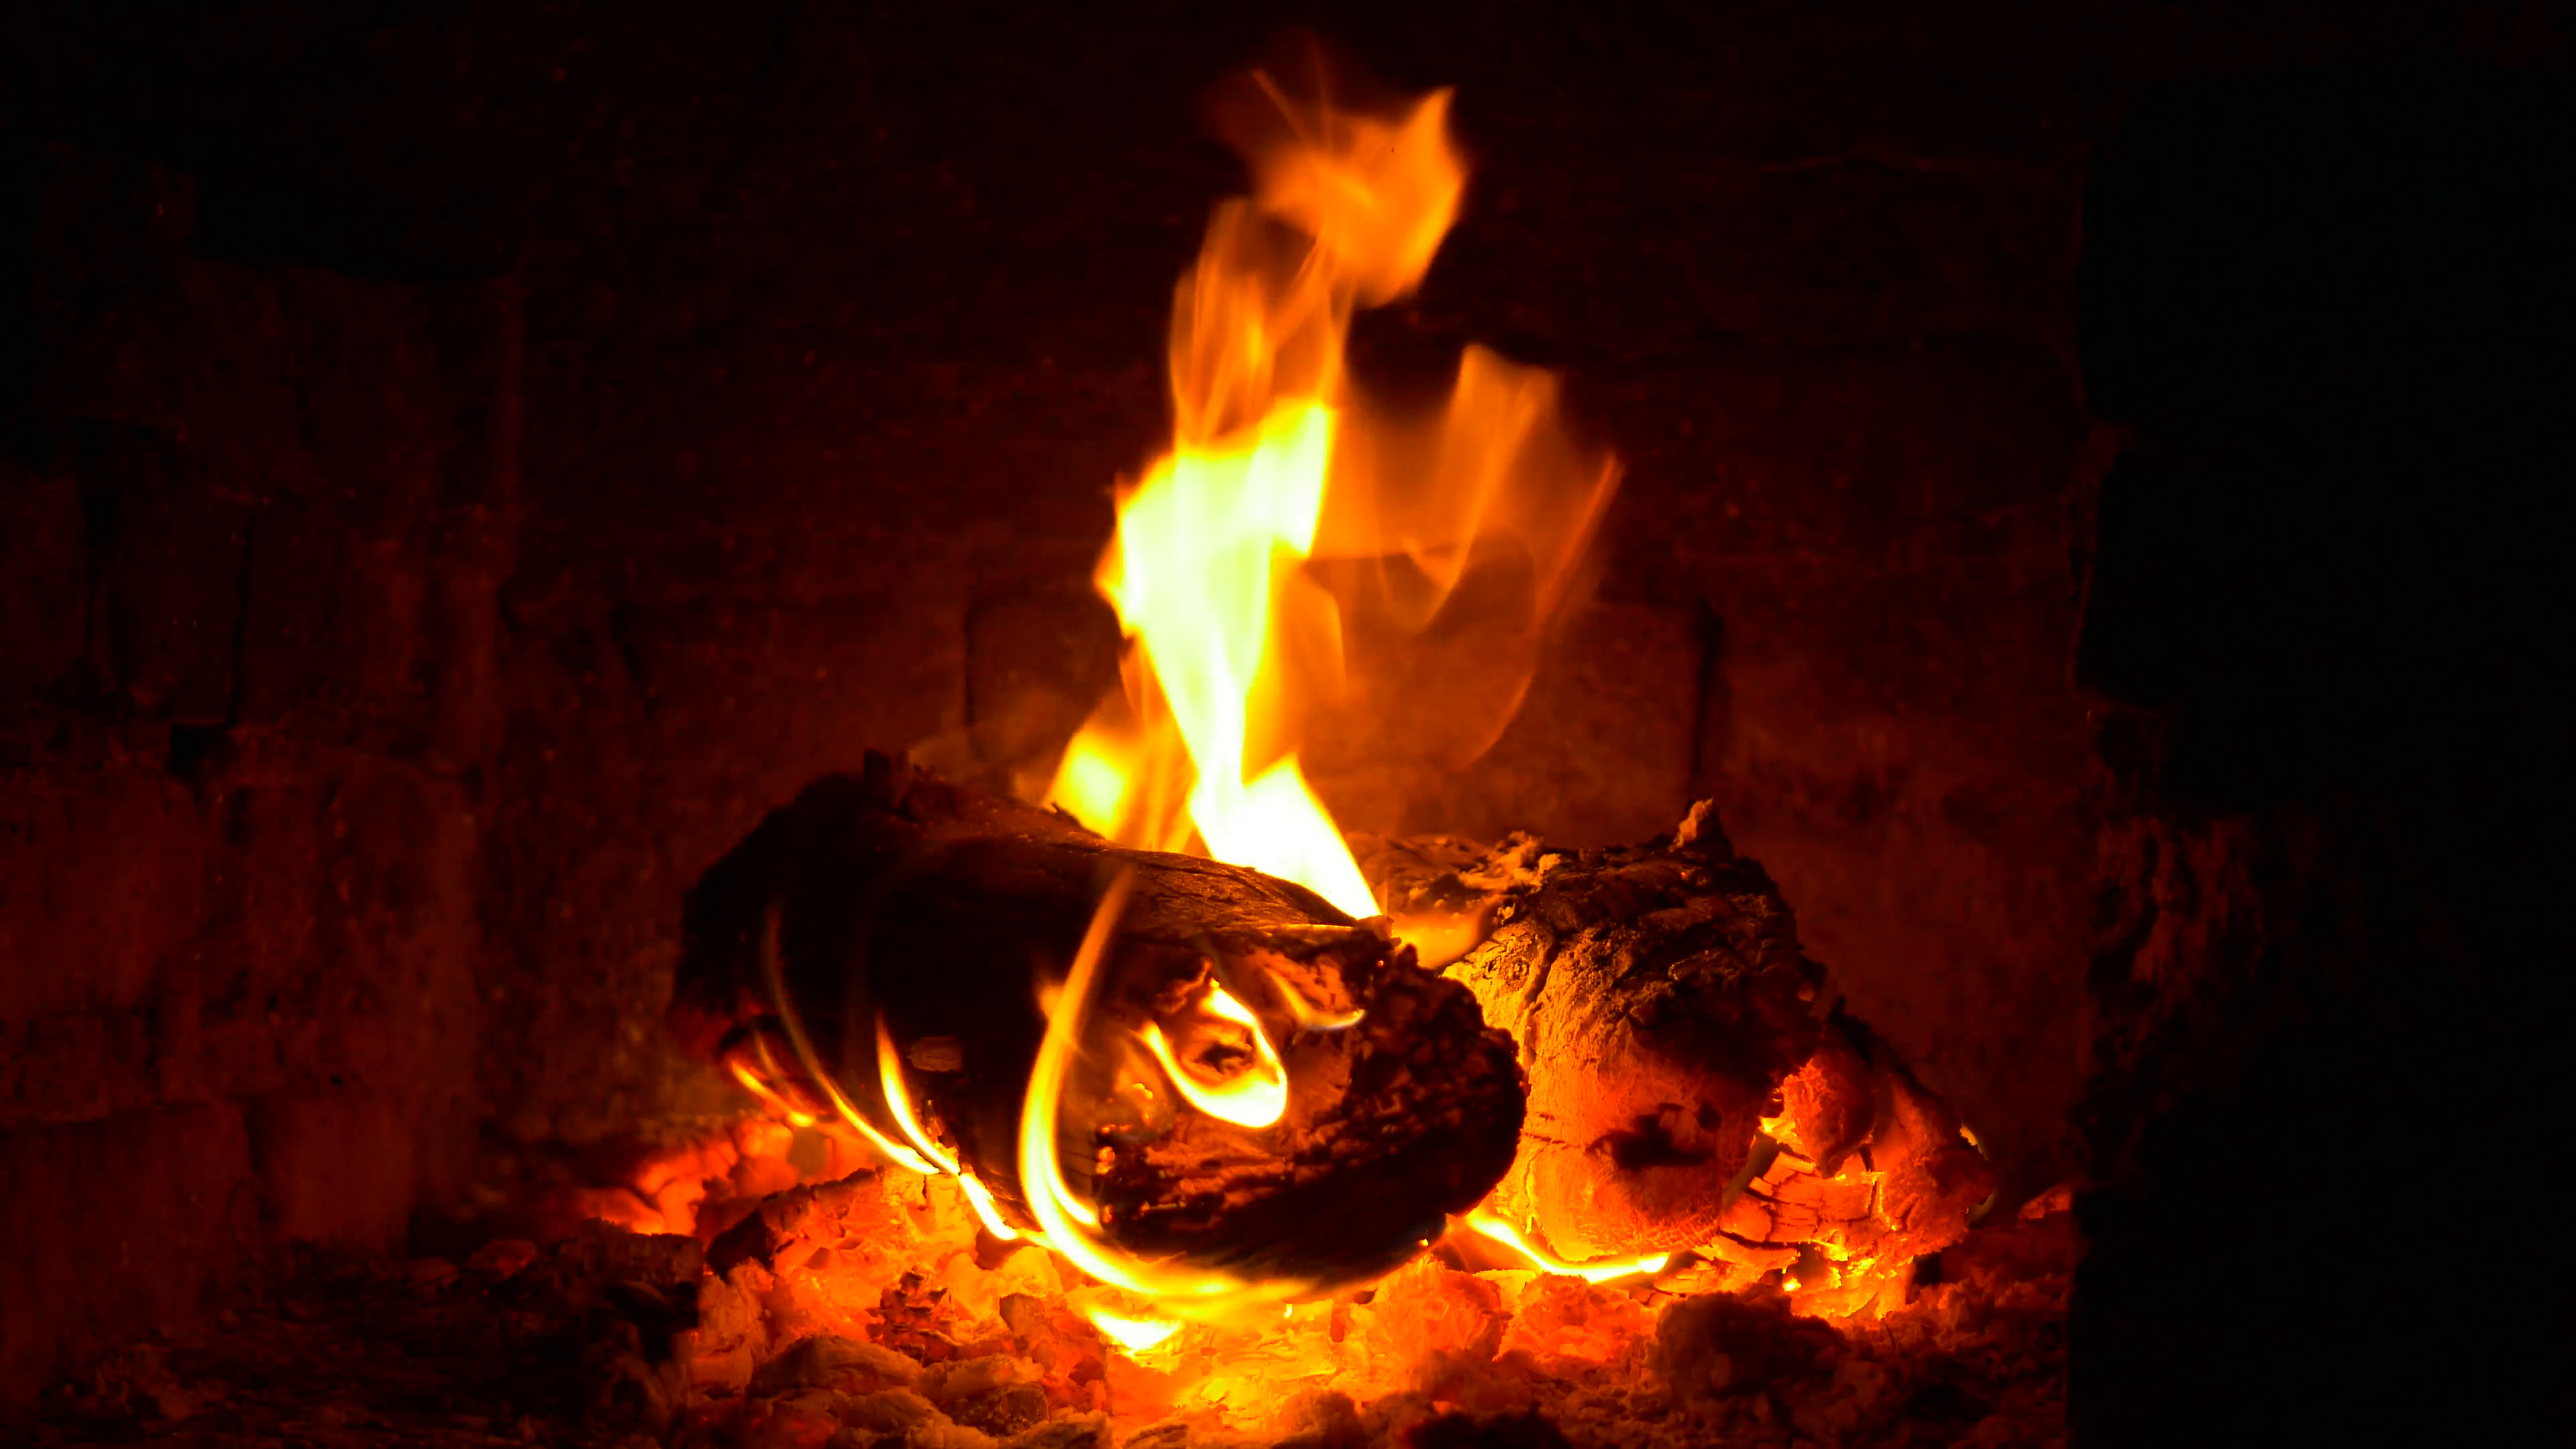 Flames of fire in fireplace in evening time 4K. Burning firewood ...